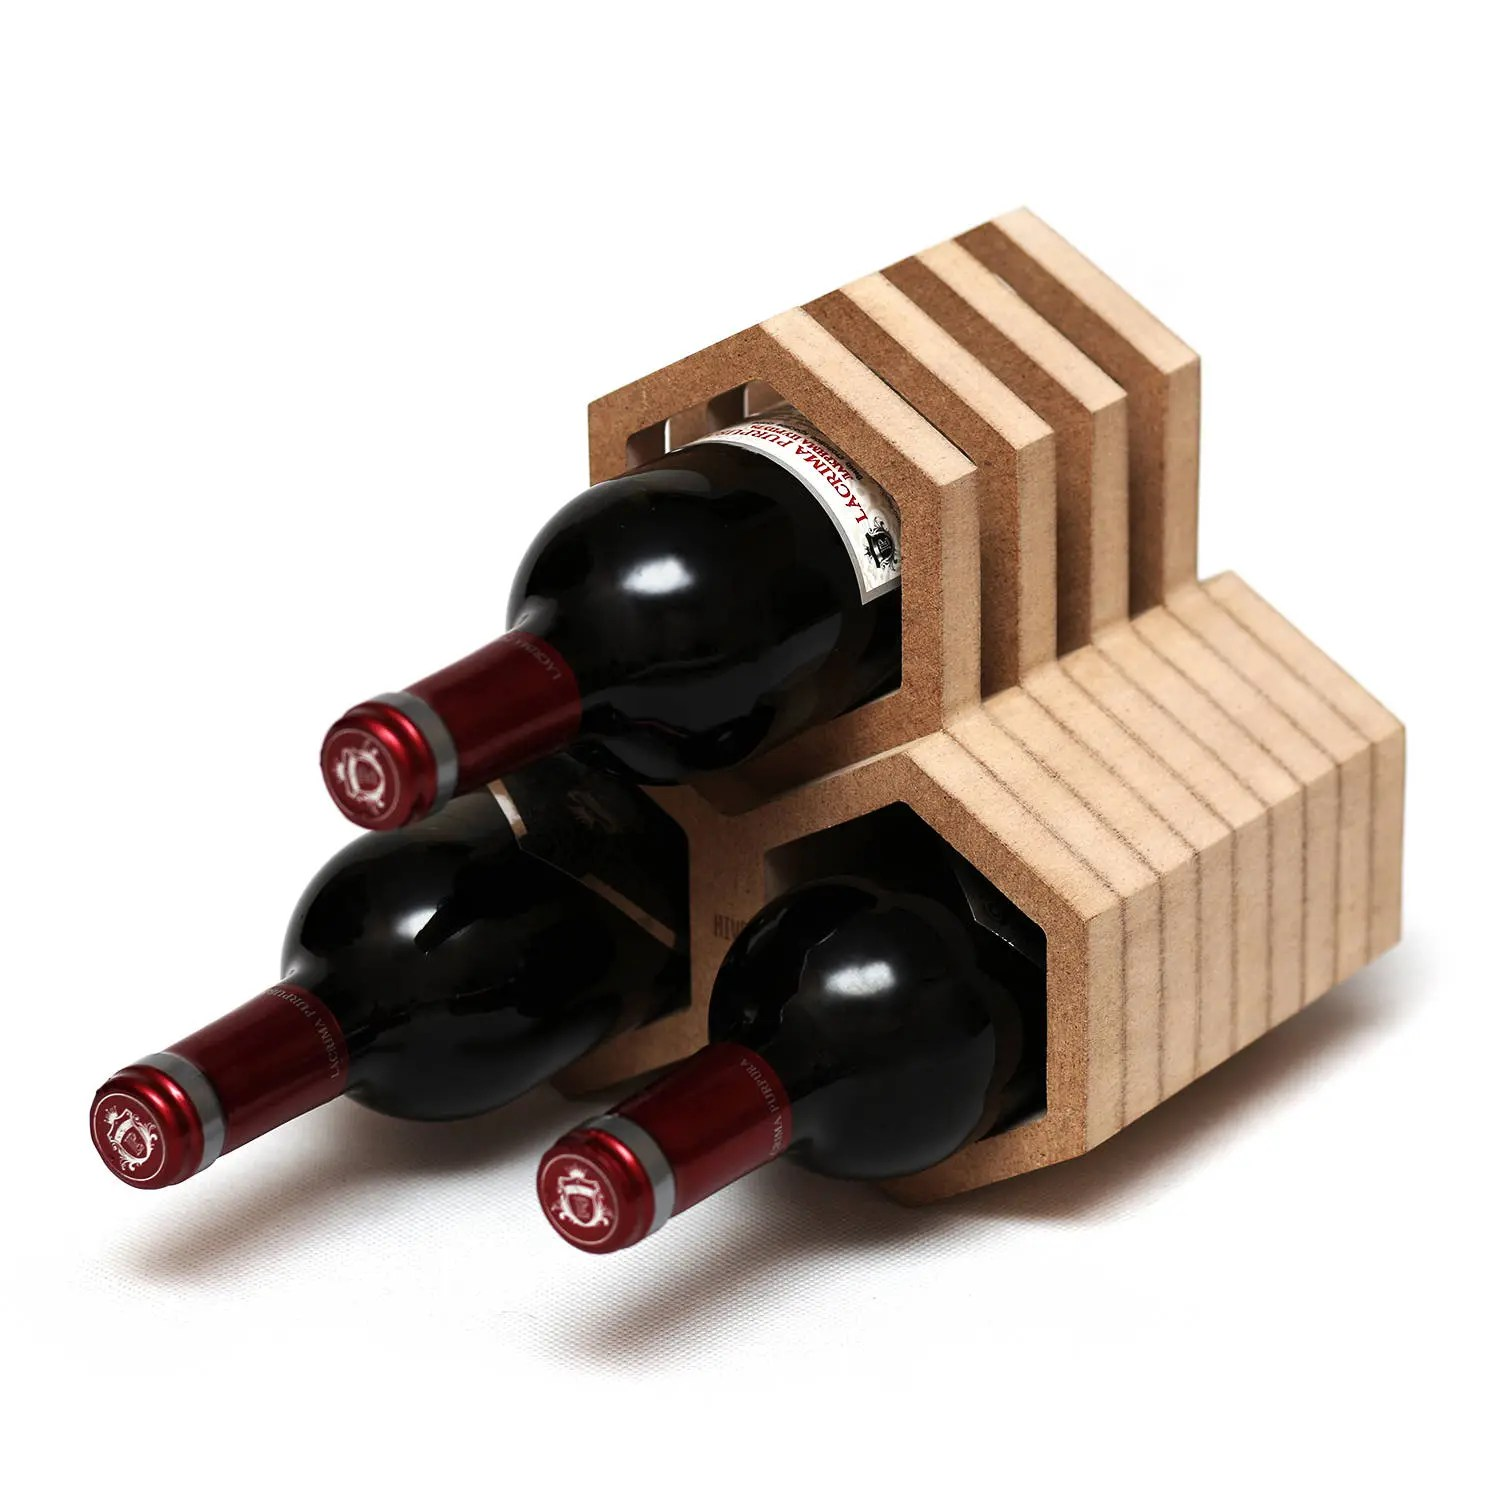 Wine Holder Stand Wooden Wine Rack Wine Holder Wooden Wine Table Stand Bottle Holder Wood Wine Collection Rack Honeycomb Rack Sommelier Gift